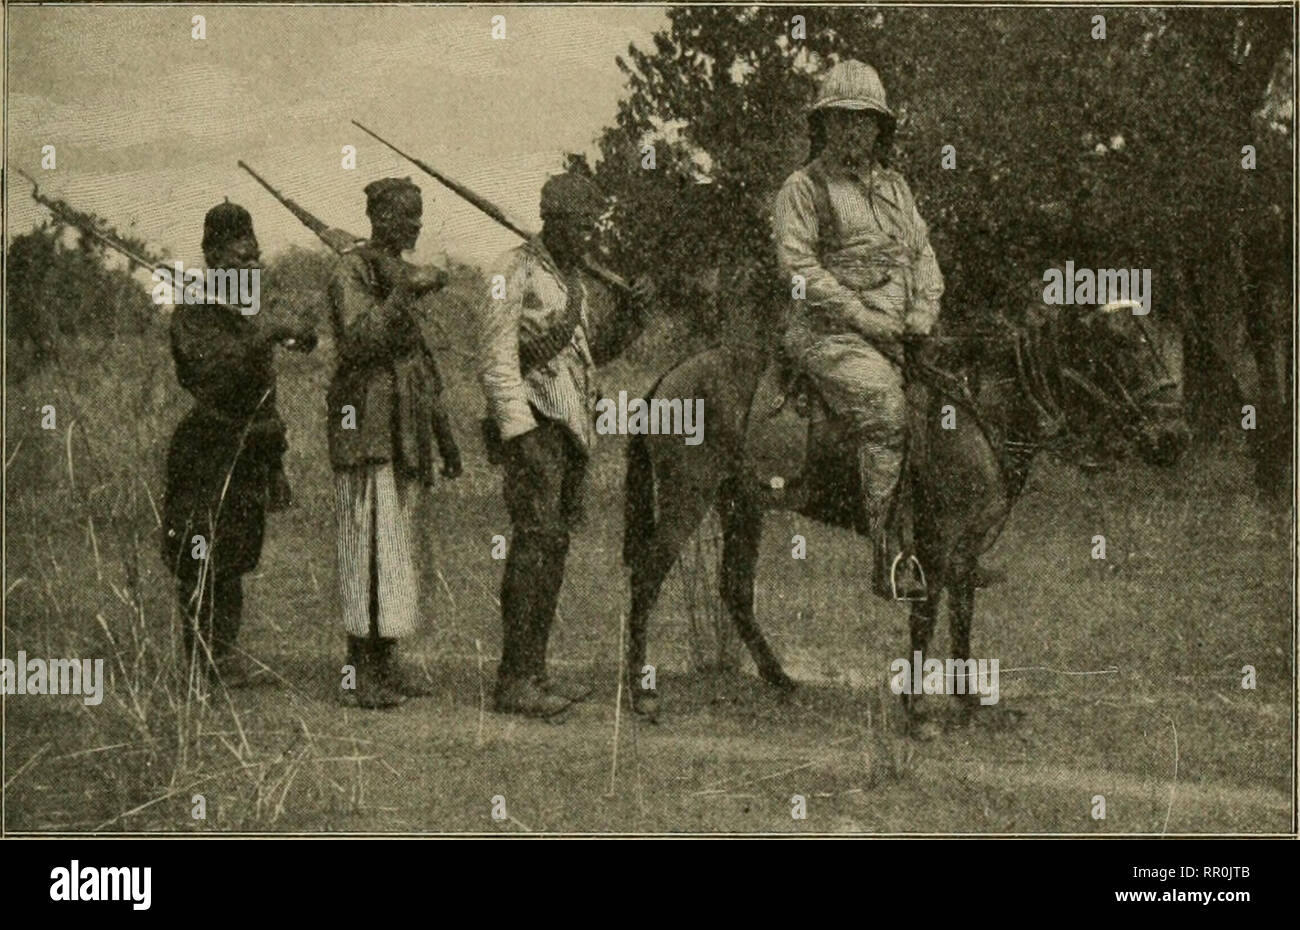 . African game trails;. Hunting. DOWN THE NILE; THE GIANT ELAND 511 some slivers of wood and boiled our tea; and our two meals, breakfast and dinner, were taken at a table in the open, under a tree. We had with us seven black soldiers of the Belgian native troops, under a corporal; they came from every quarter of the Congo, but several of them could speak Swahili, the lingua franca of middle Africa, and so Kermit could talk freely with them. These black soldiers be-. Thc letuin tu Redjaf, Belgian askari in tht; rear From a photograph by Kermit Roosevelt haved excellently, and the attitude, bot - Stock Image